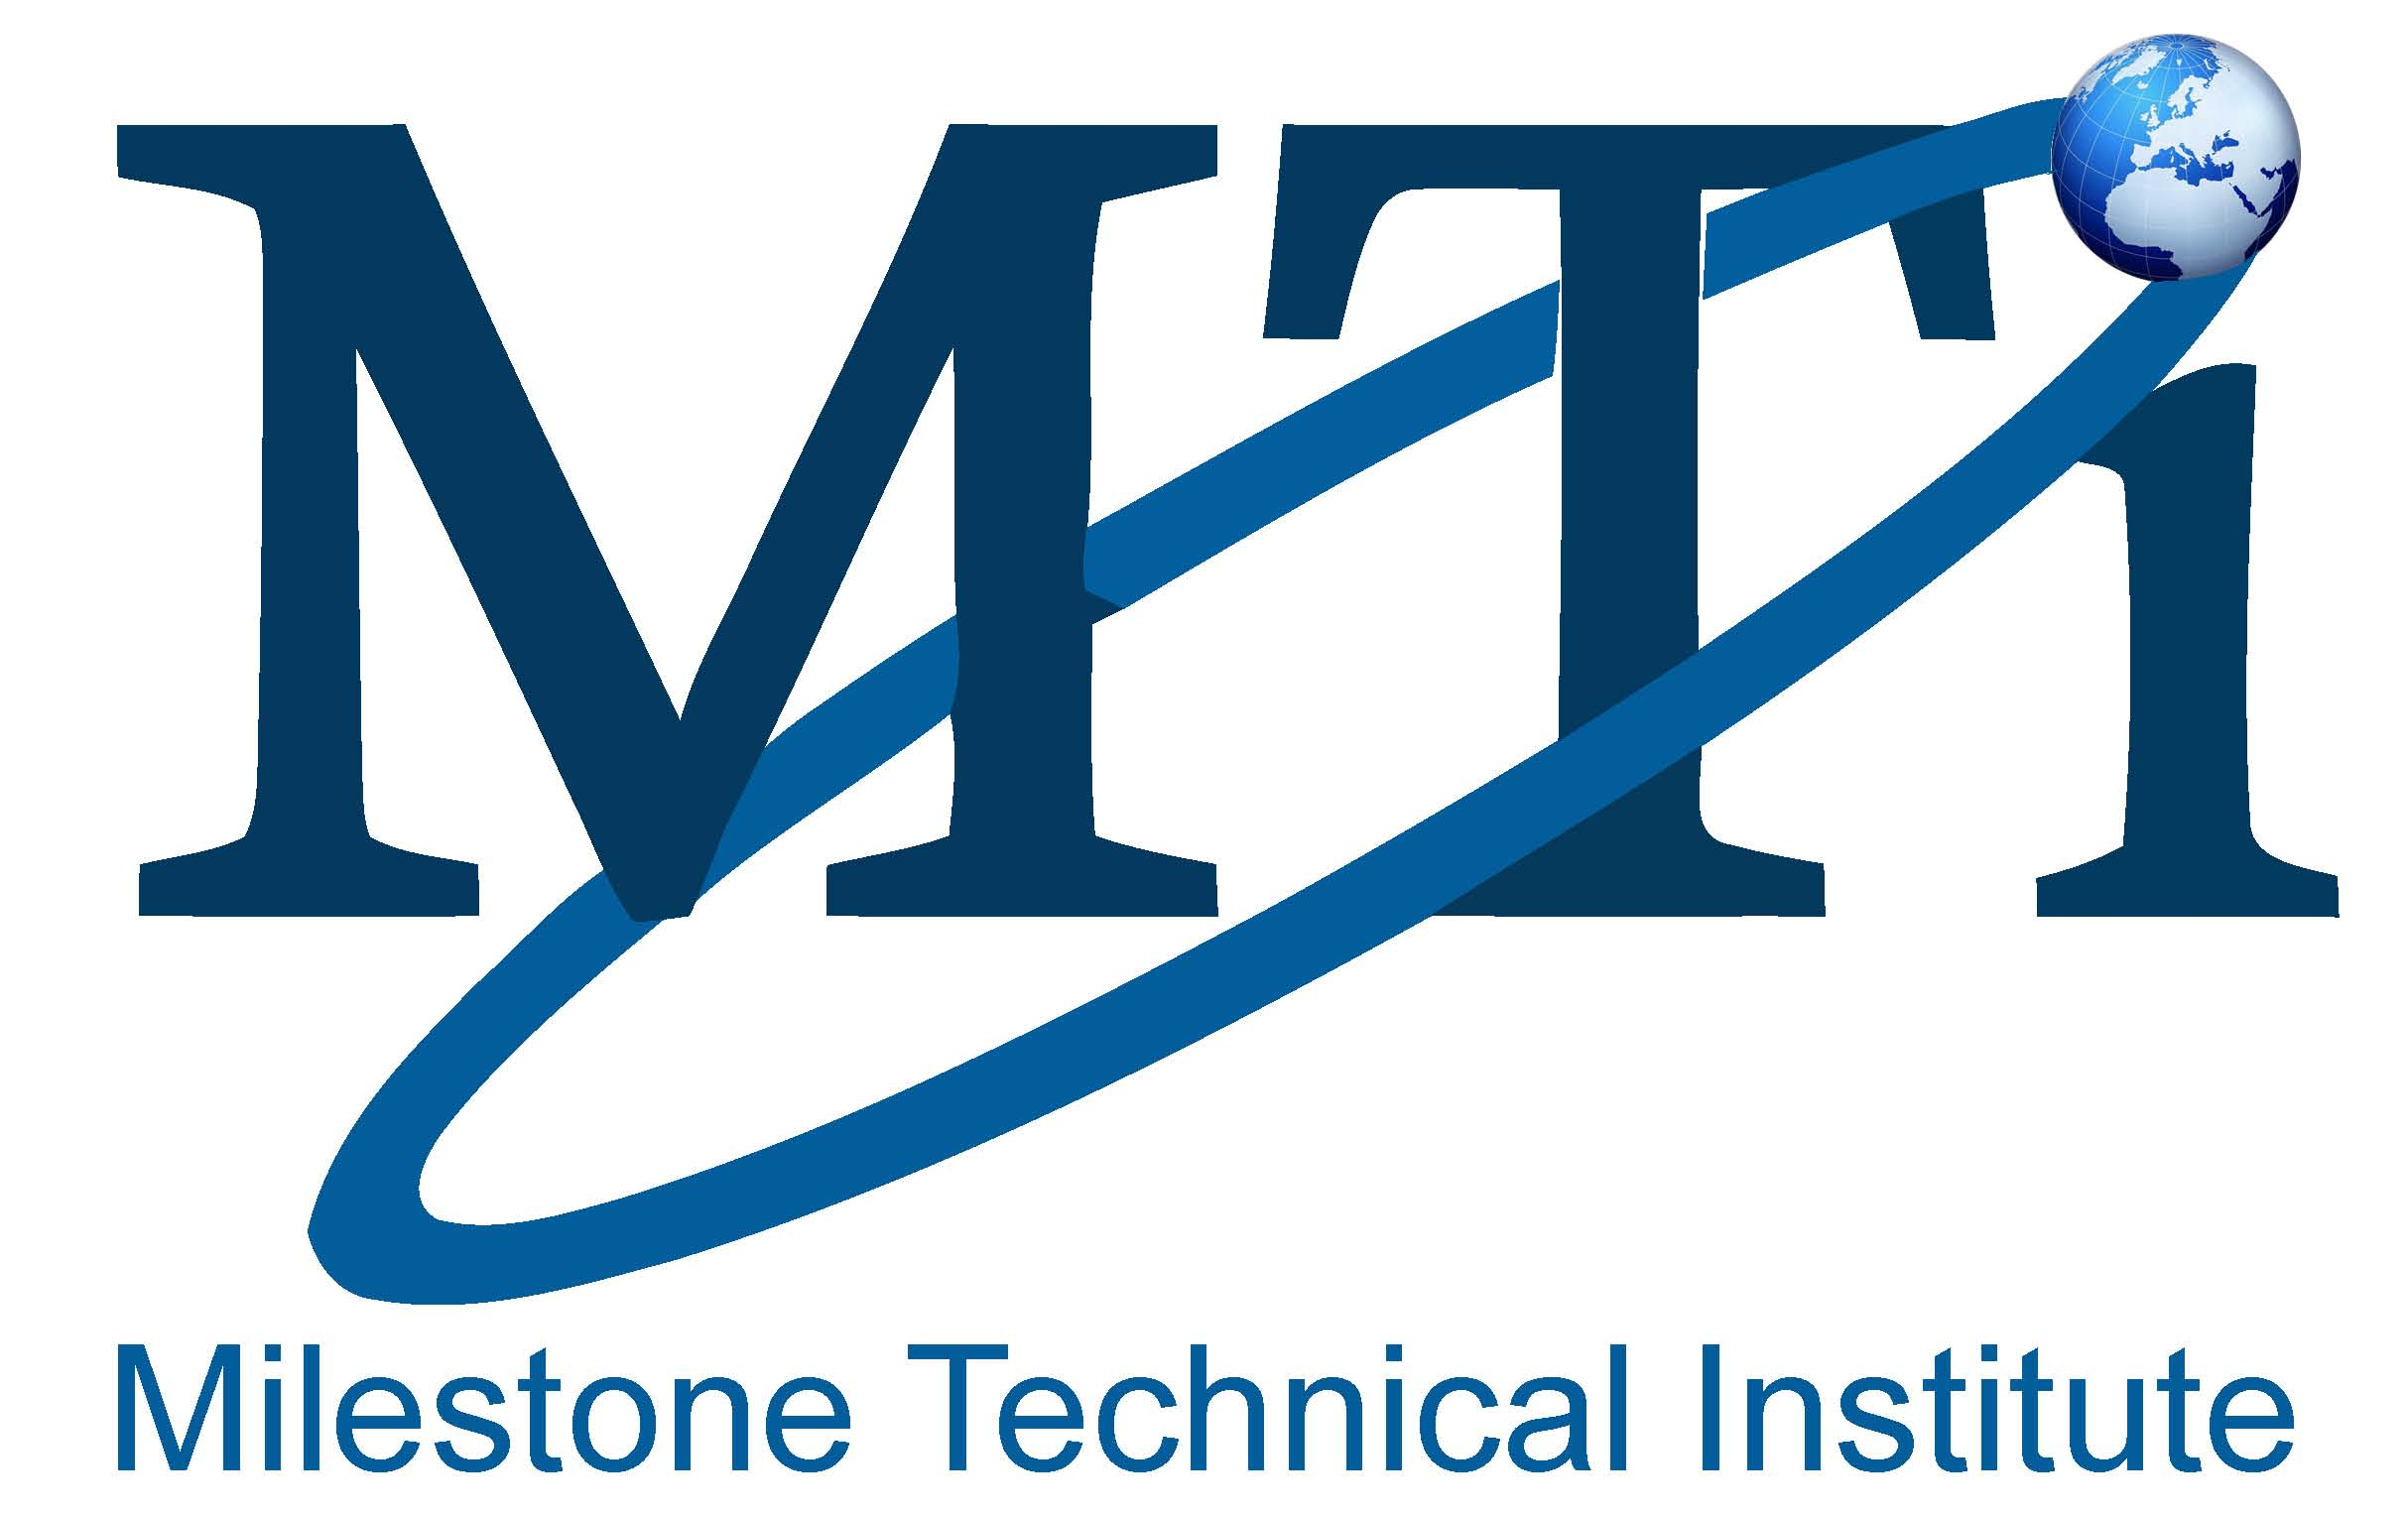 Milestone Technical Institute image 1